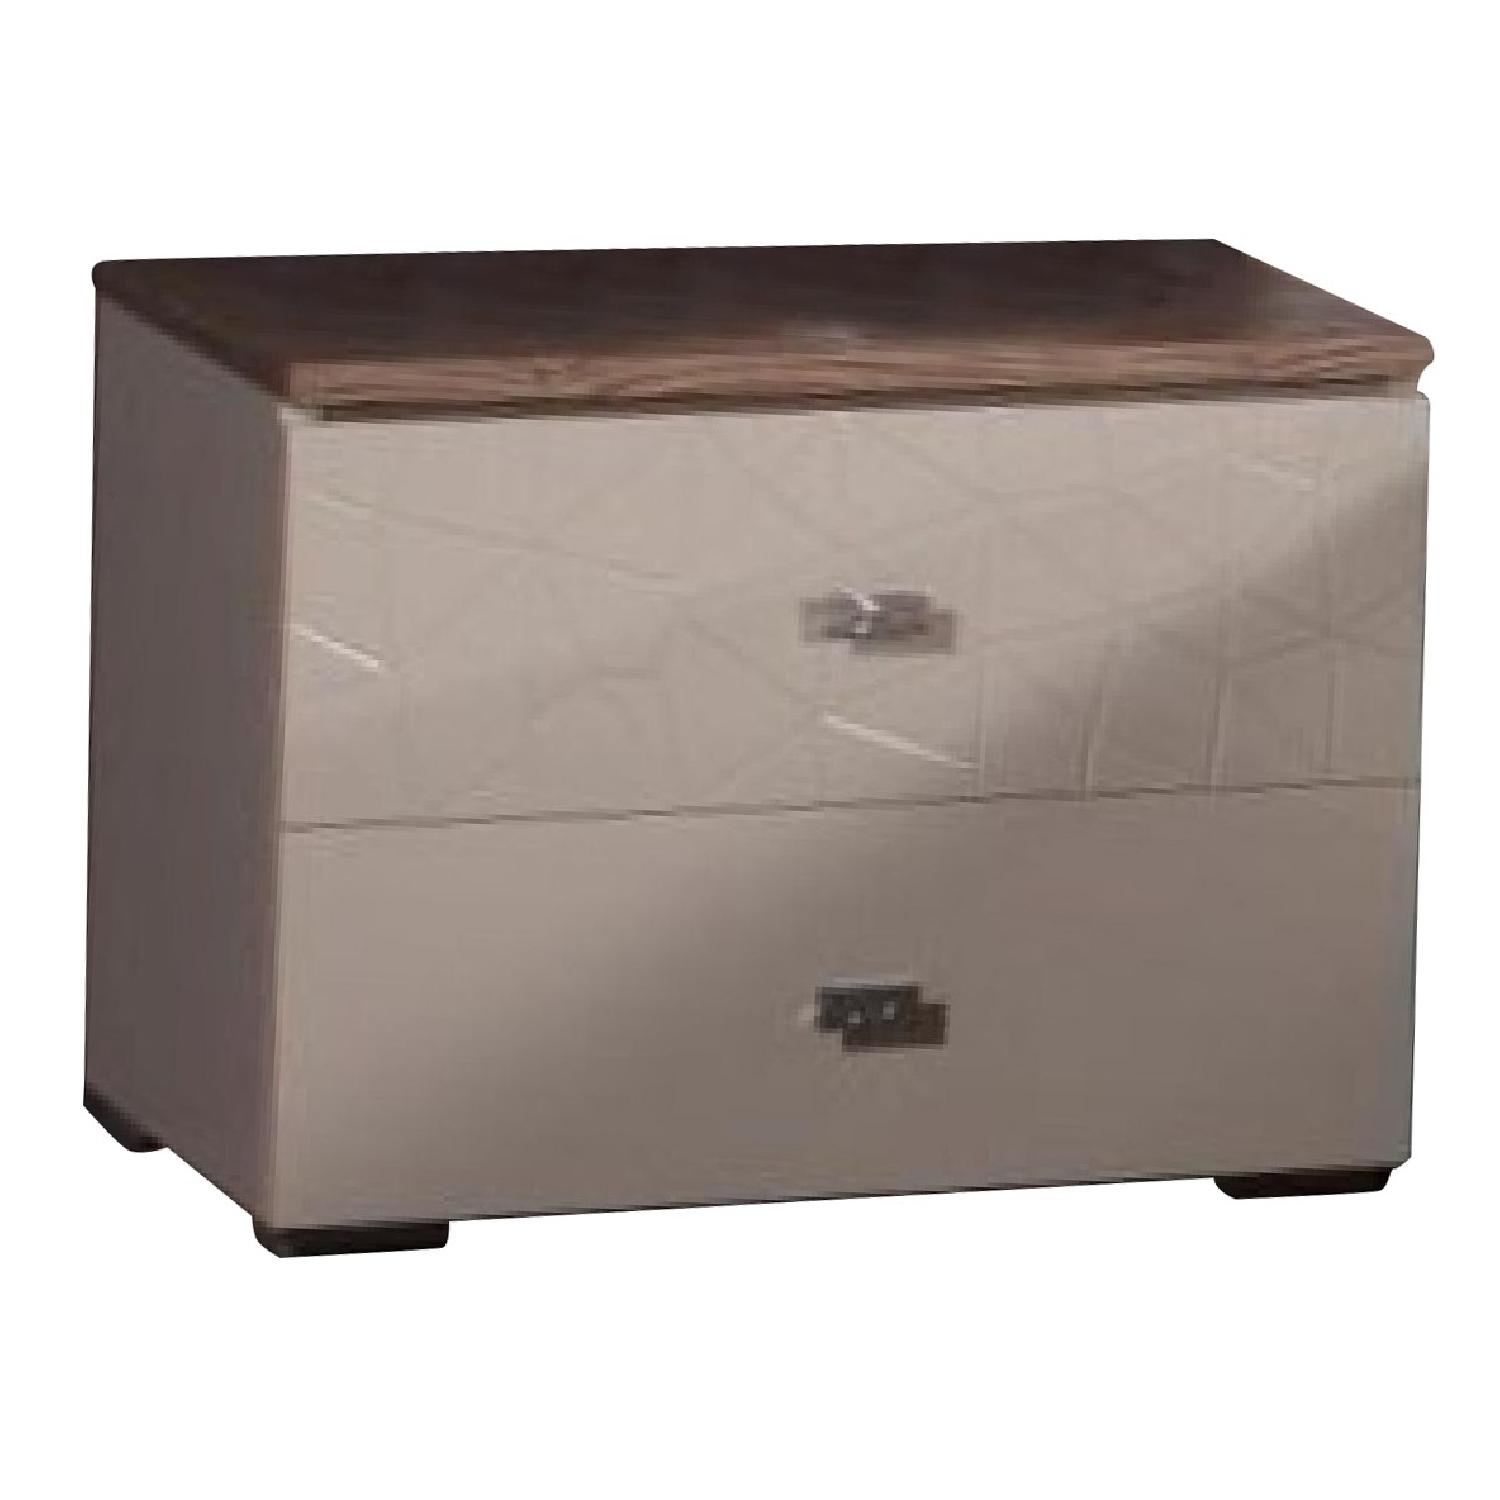 2-Drawer Nightstand in Beige High Gloss Finish w/ Etched Motif Acacia Veneer Top